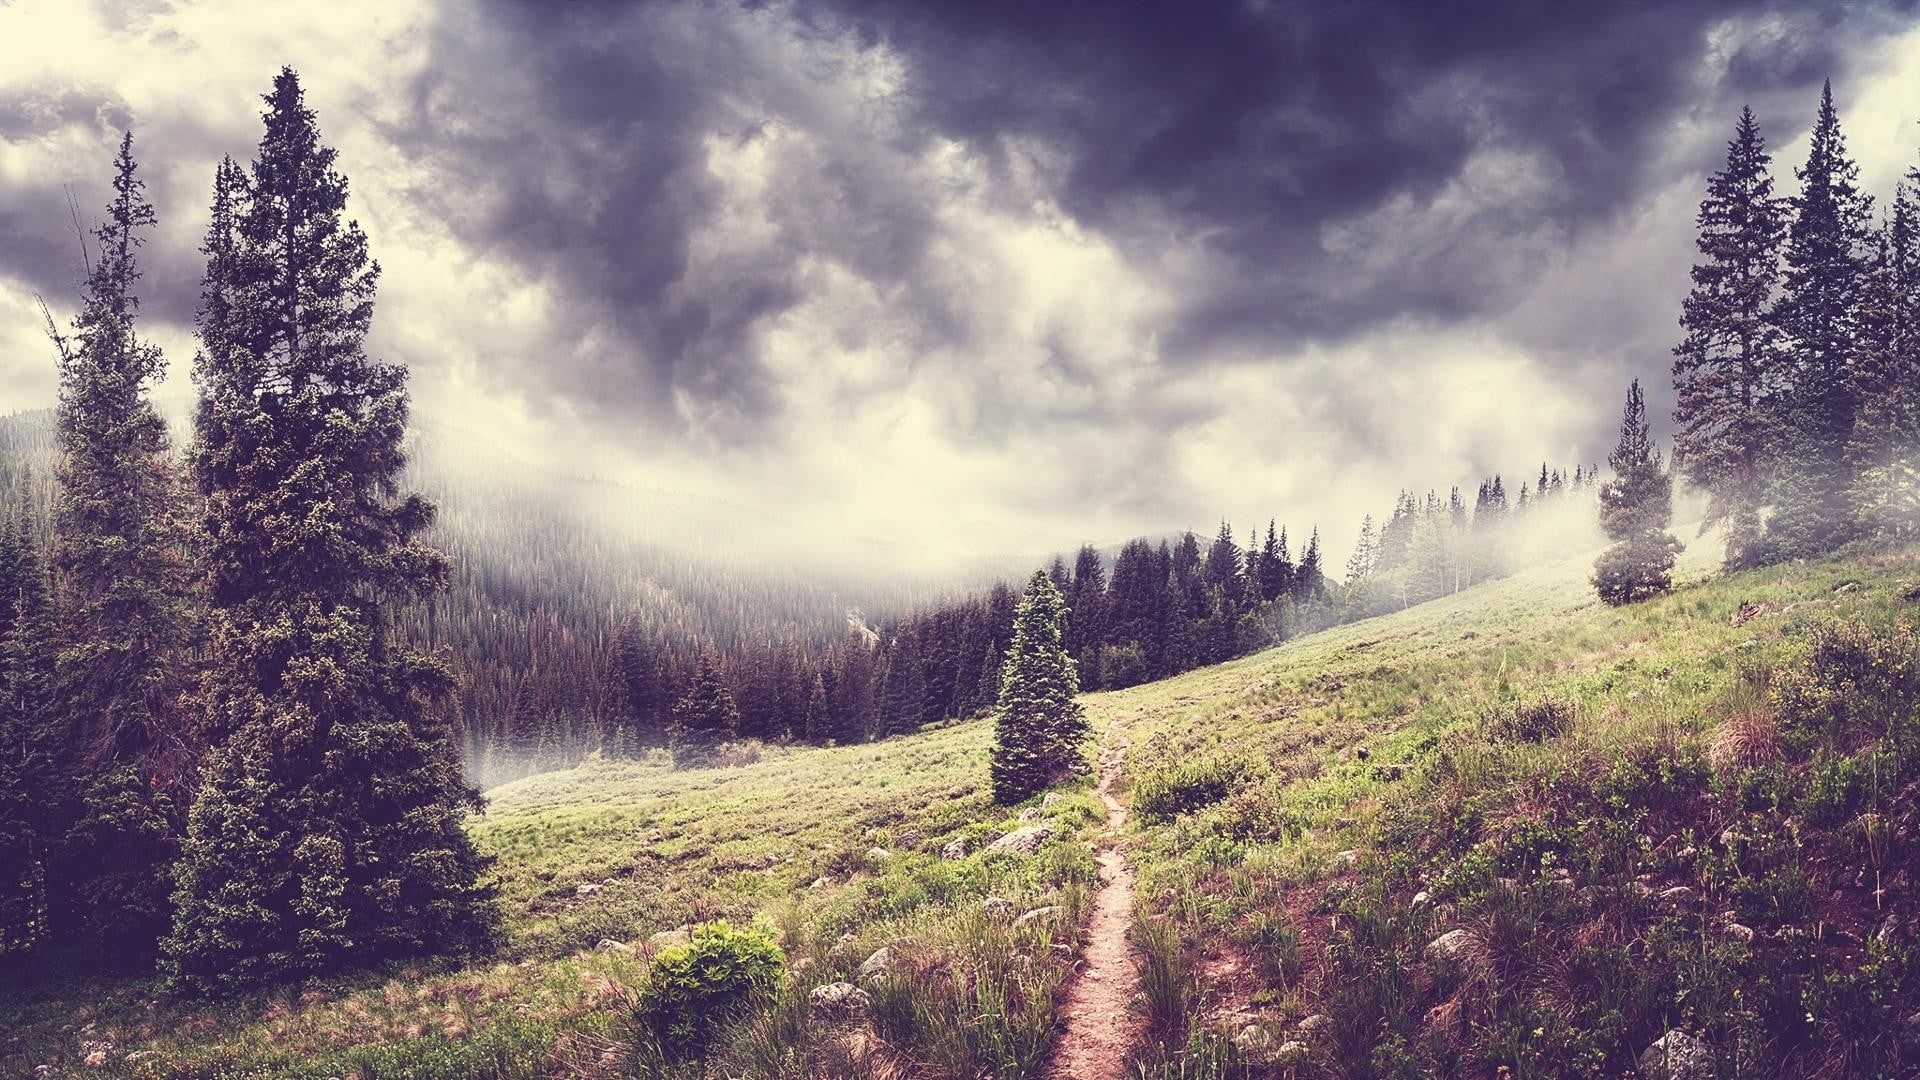 Mountains And Forest In Fog Pic